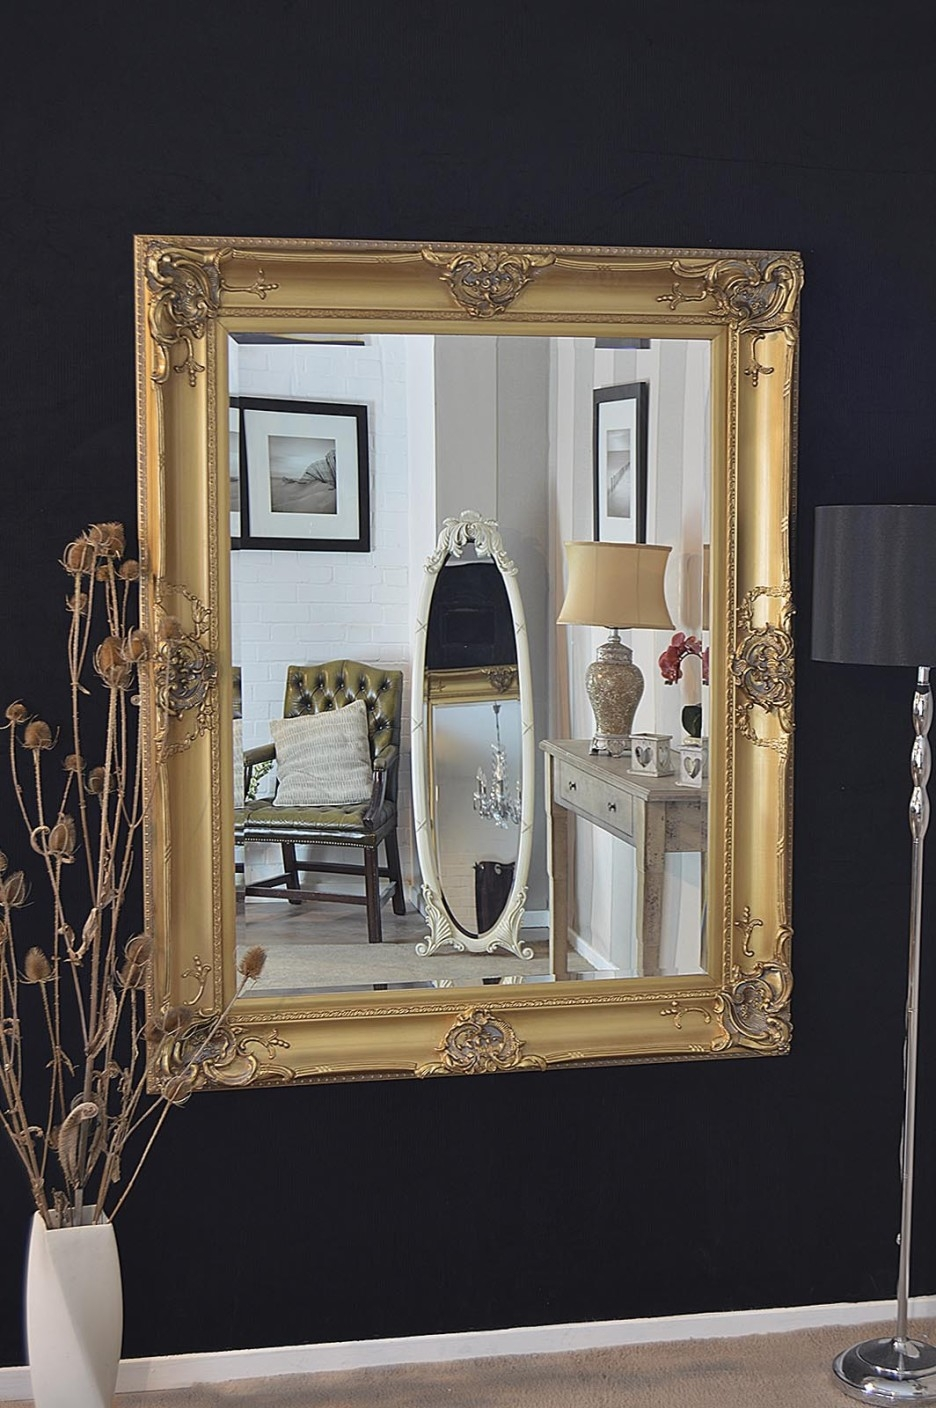 Black And Gold Framed Mirror Harpsoundsco With Regard To Black And Gold Wall Mirror (Image 4 of 15)